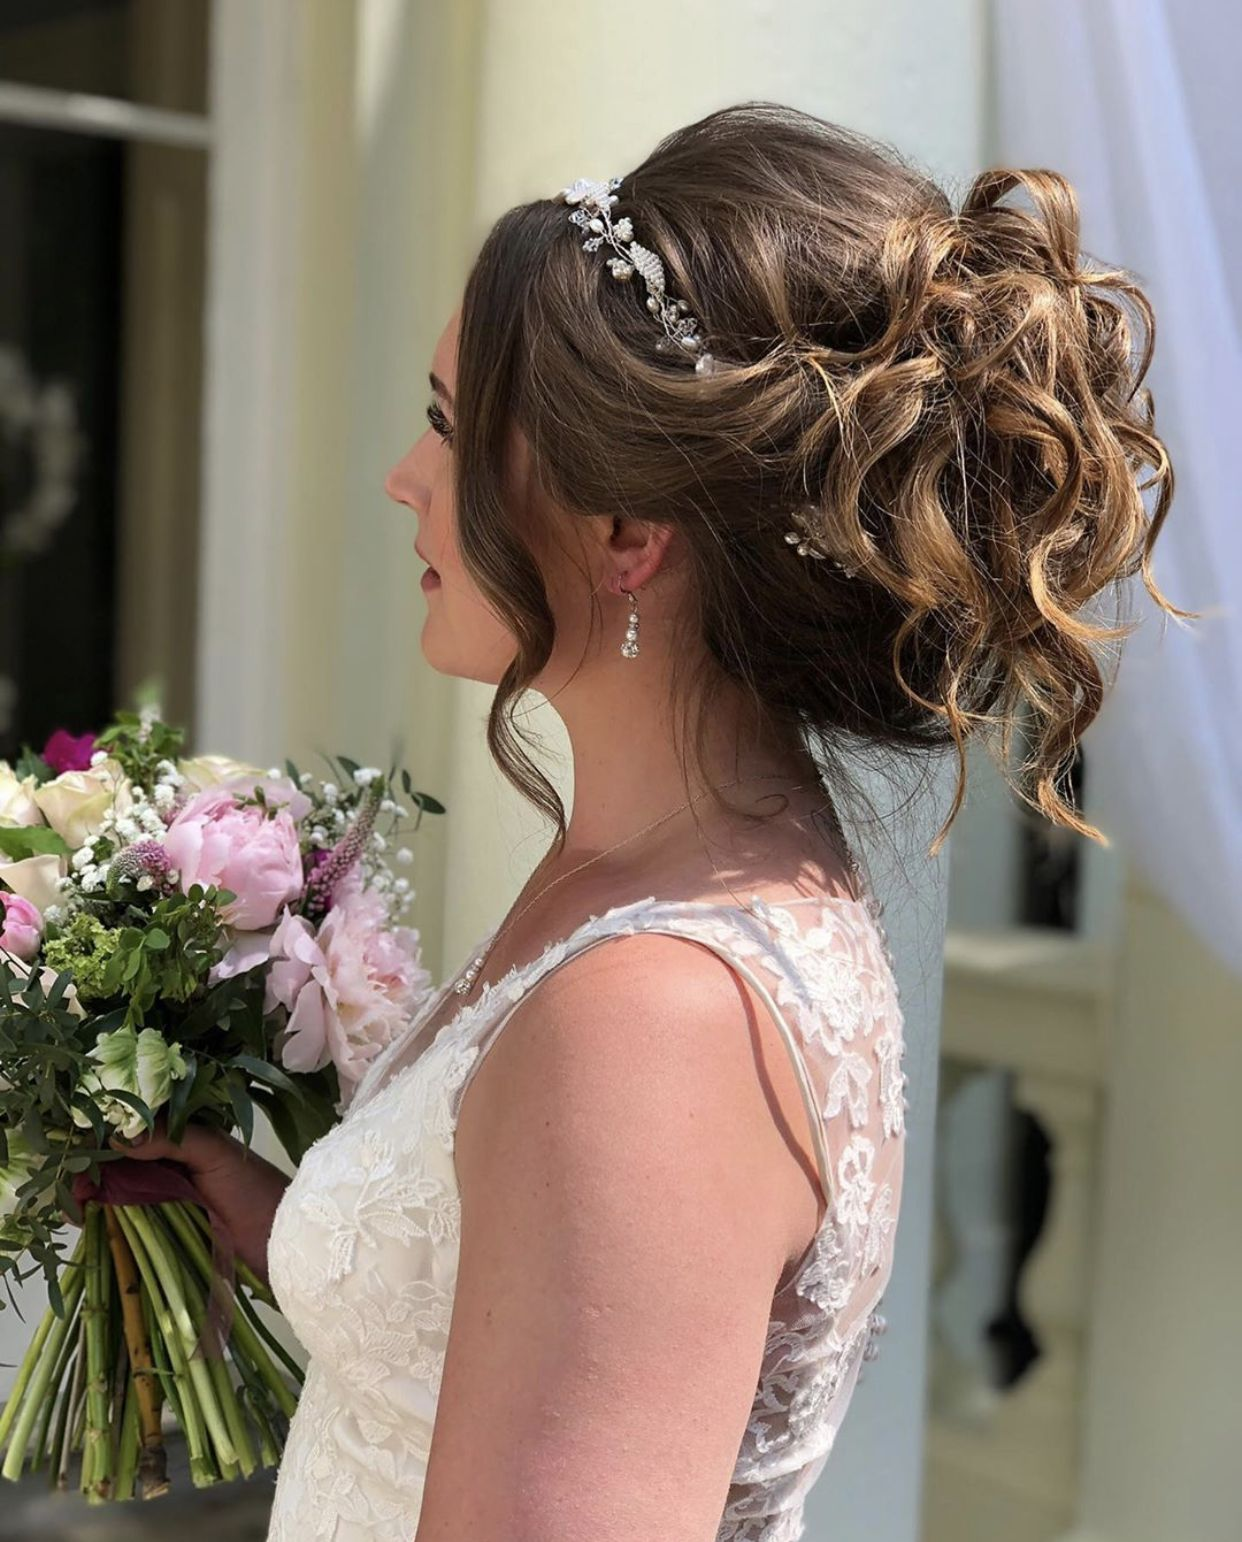 Romantic bridal updo with hair vine in 2020 | Bride updo, Thick hair styles, Hair and makeup artist